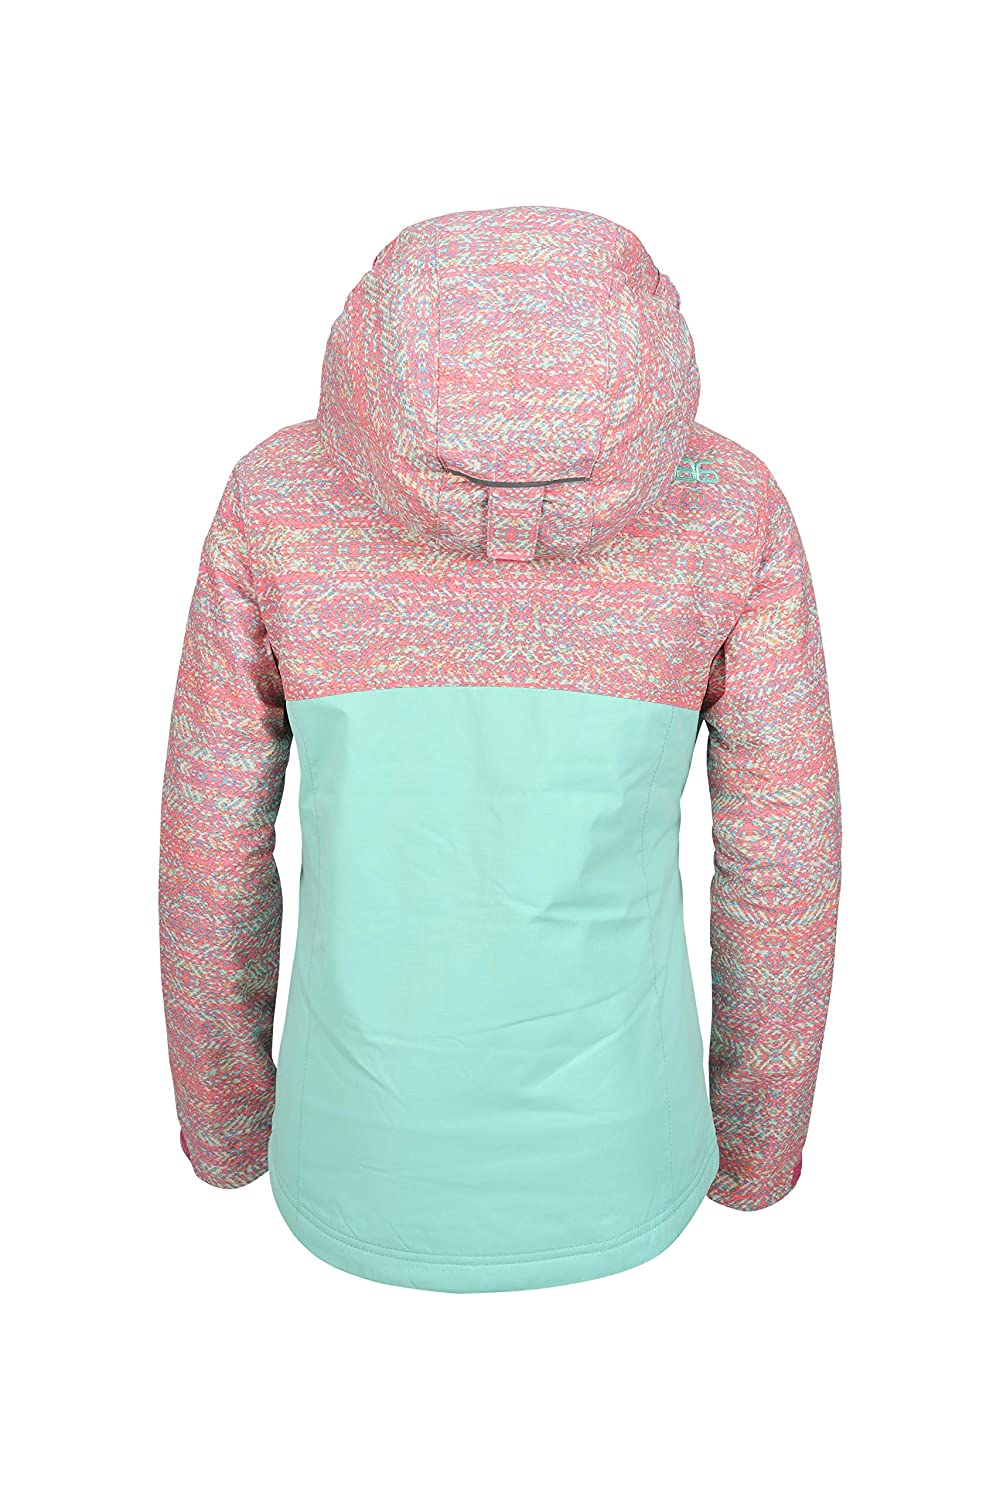 Girls' Clothing (0-24 Months) Honest Baby Girls Pink Button Up Knit Hooded Cardigan Up To 1 Month Superior Materials